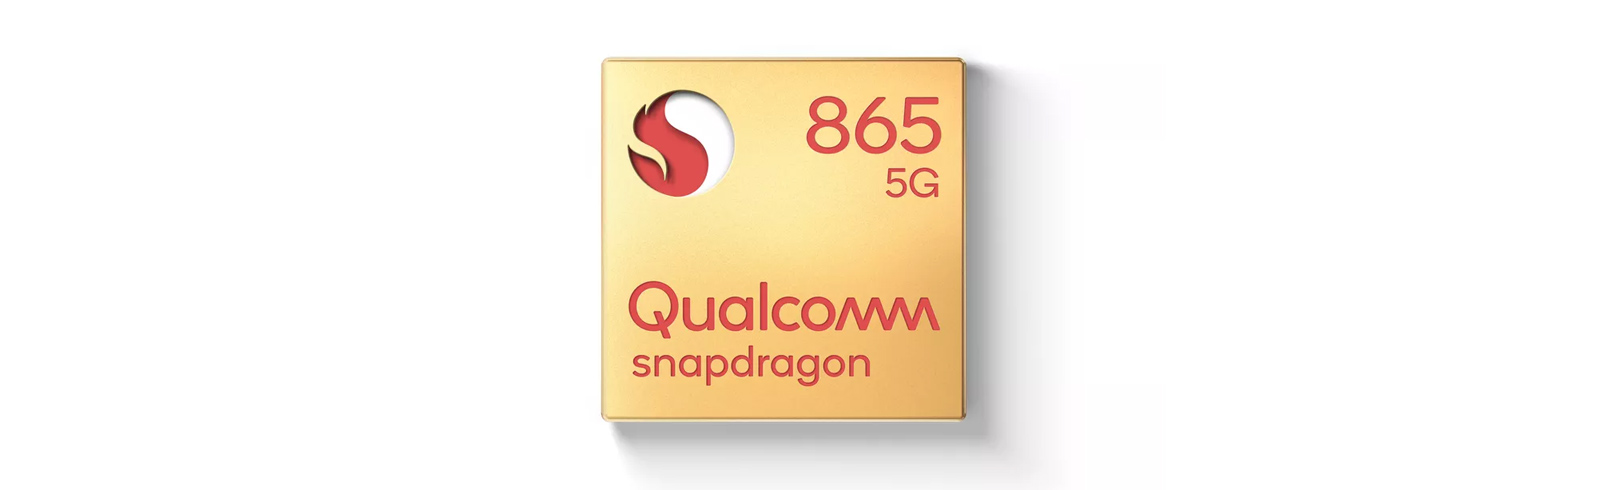 Qualcomm fully unveils the Snapdraon 865 and Snapdragon 765/765G